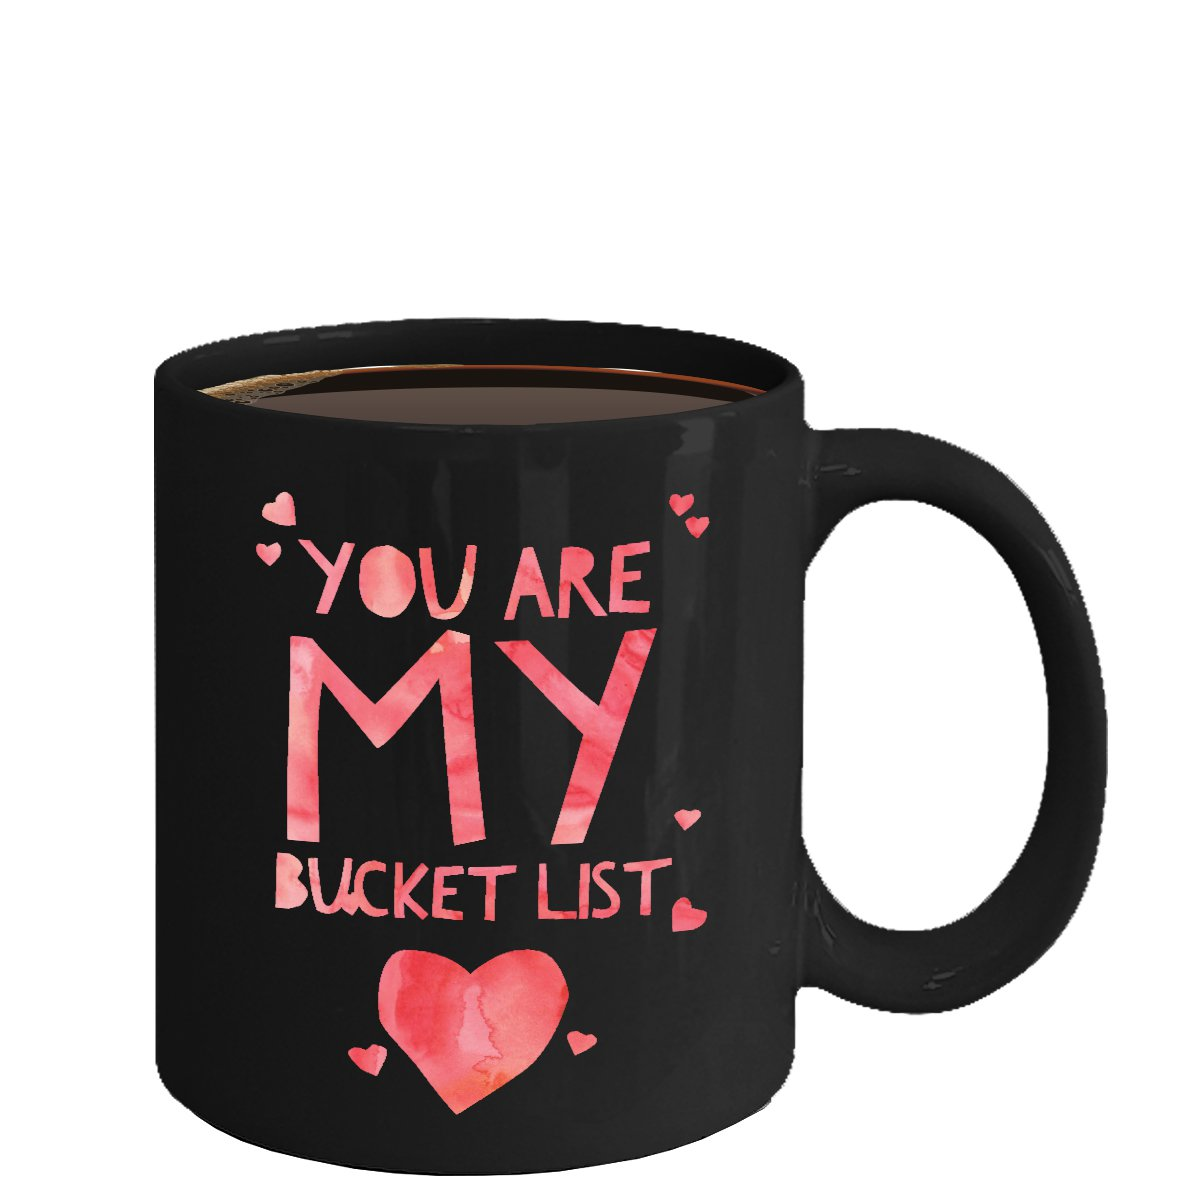 Love Ceramic Coffee Mug - You Are My Bucket List - Cute Large Cup (Black) - Best Gift for Men, Women